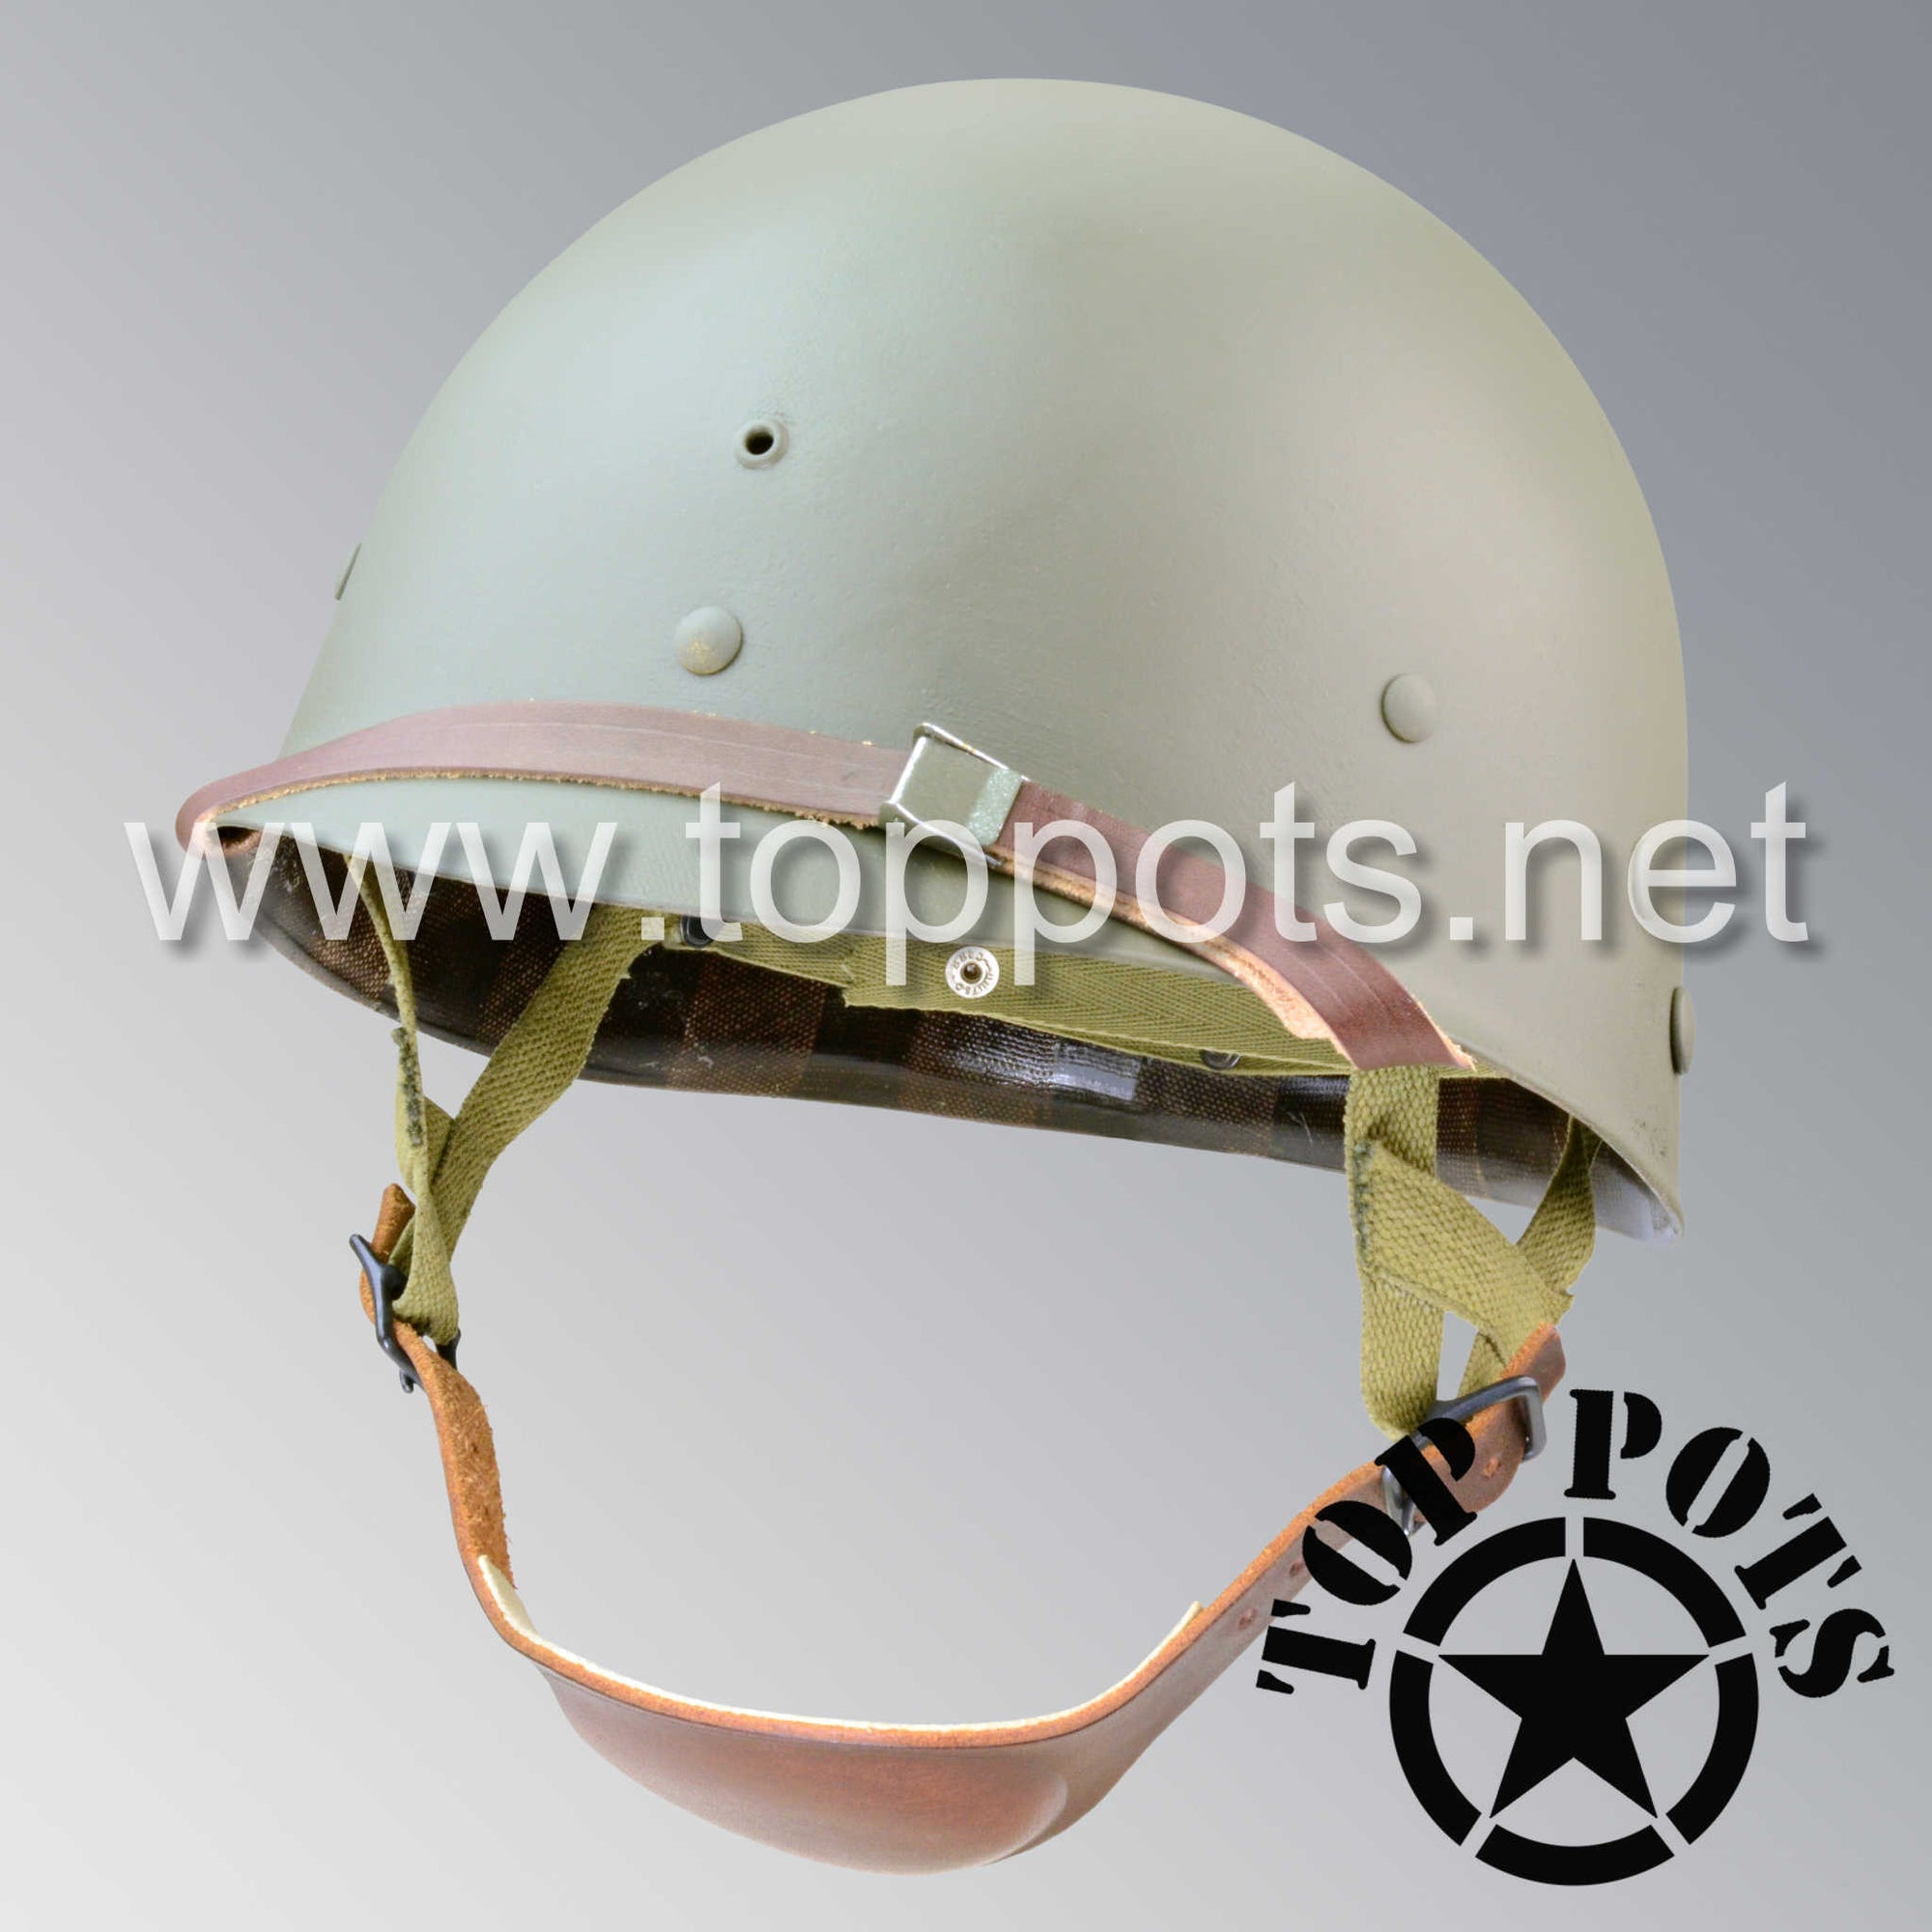 Image 1 of WWII US Army Restored Original M1C Paratrooper Airborne Helmet Liner with Inland A Straps